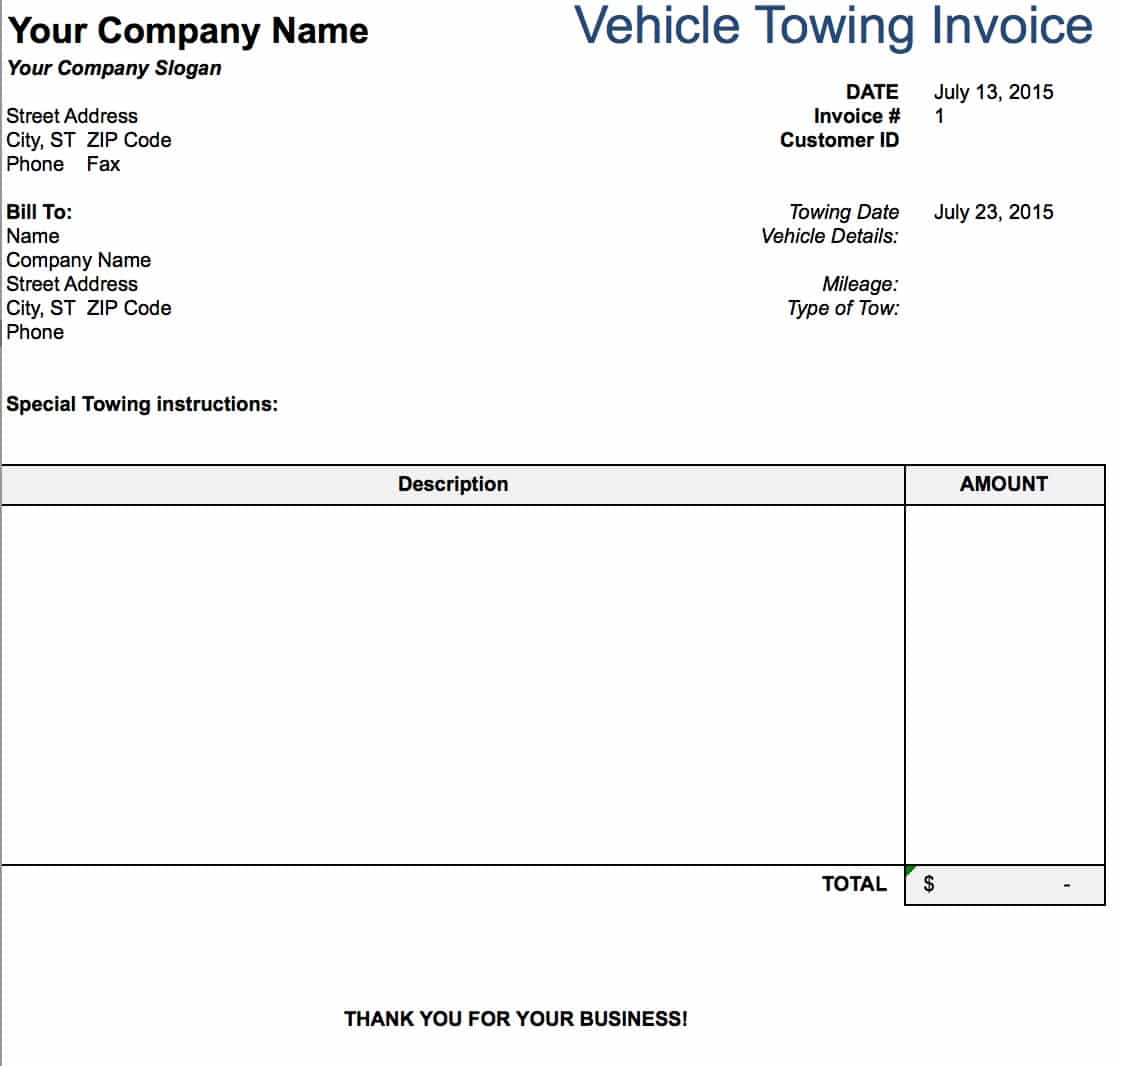 Free Tow Service Invoice Template Excel PDF Word Doc - Invoice example word for service business